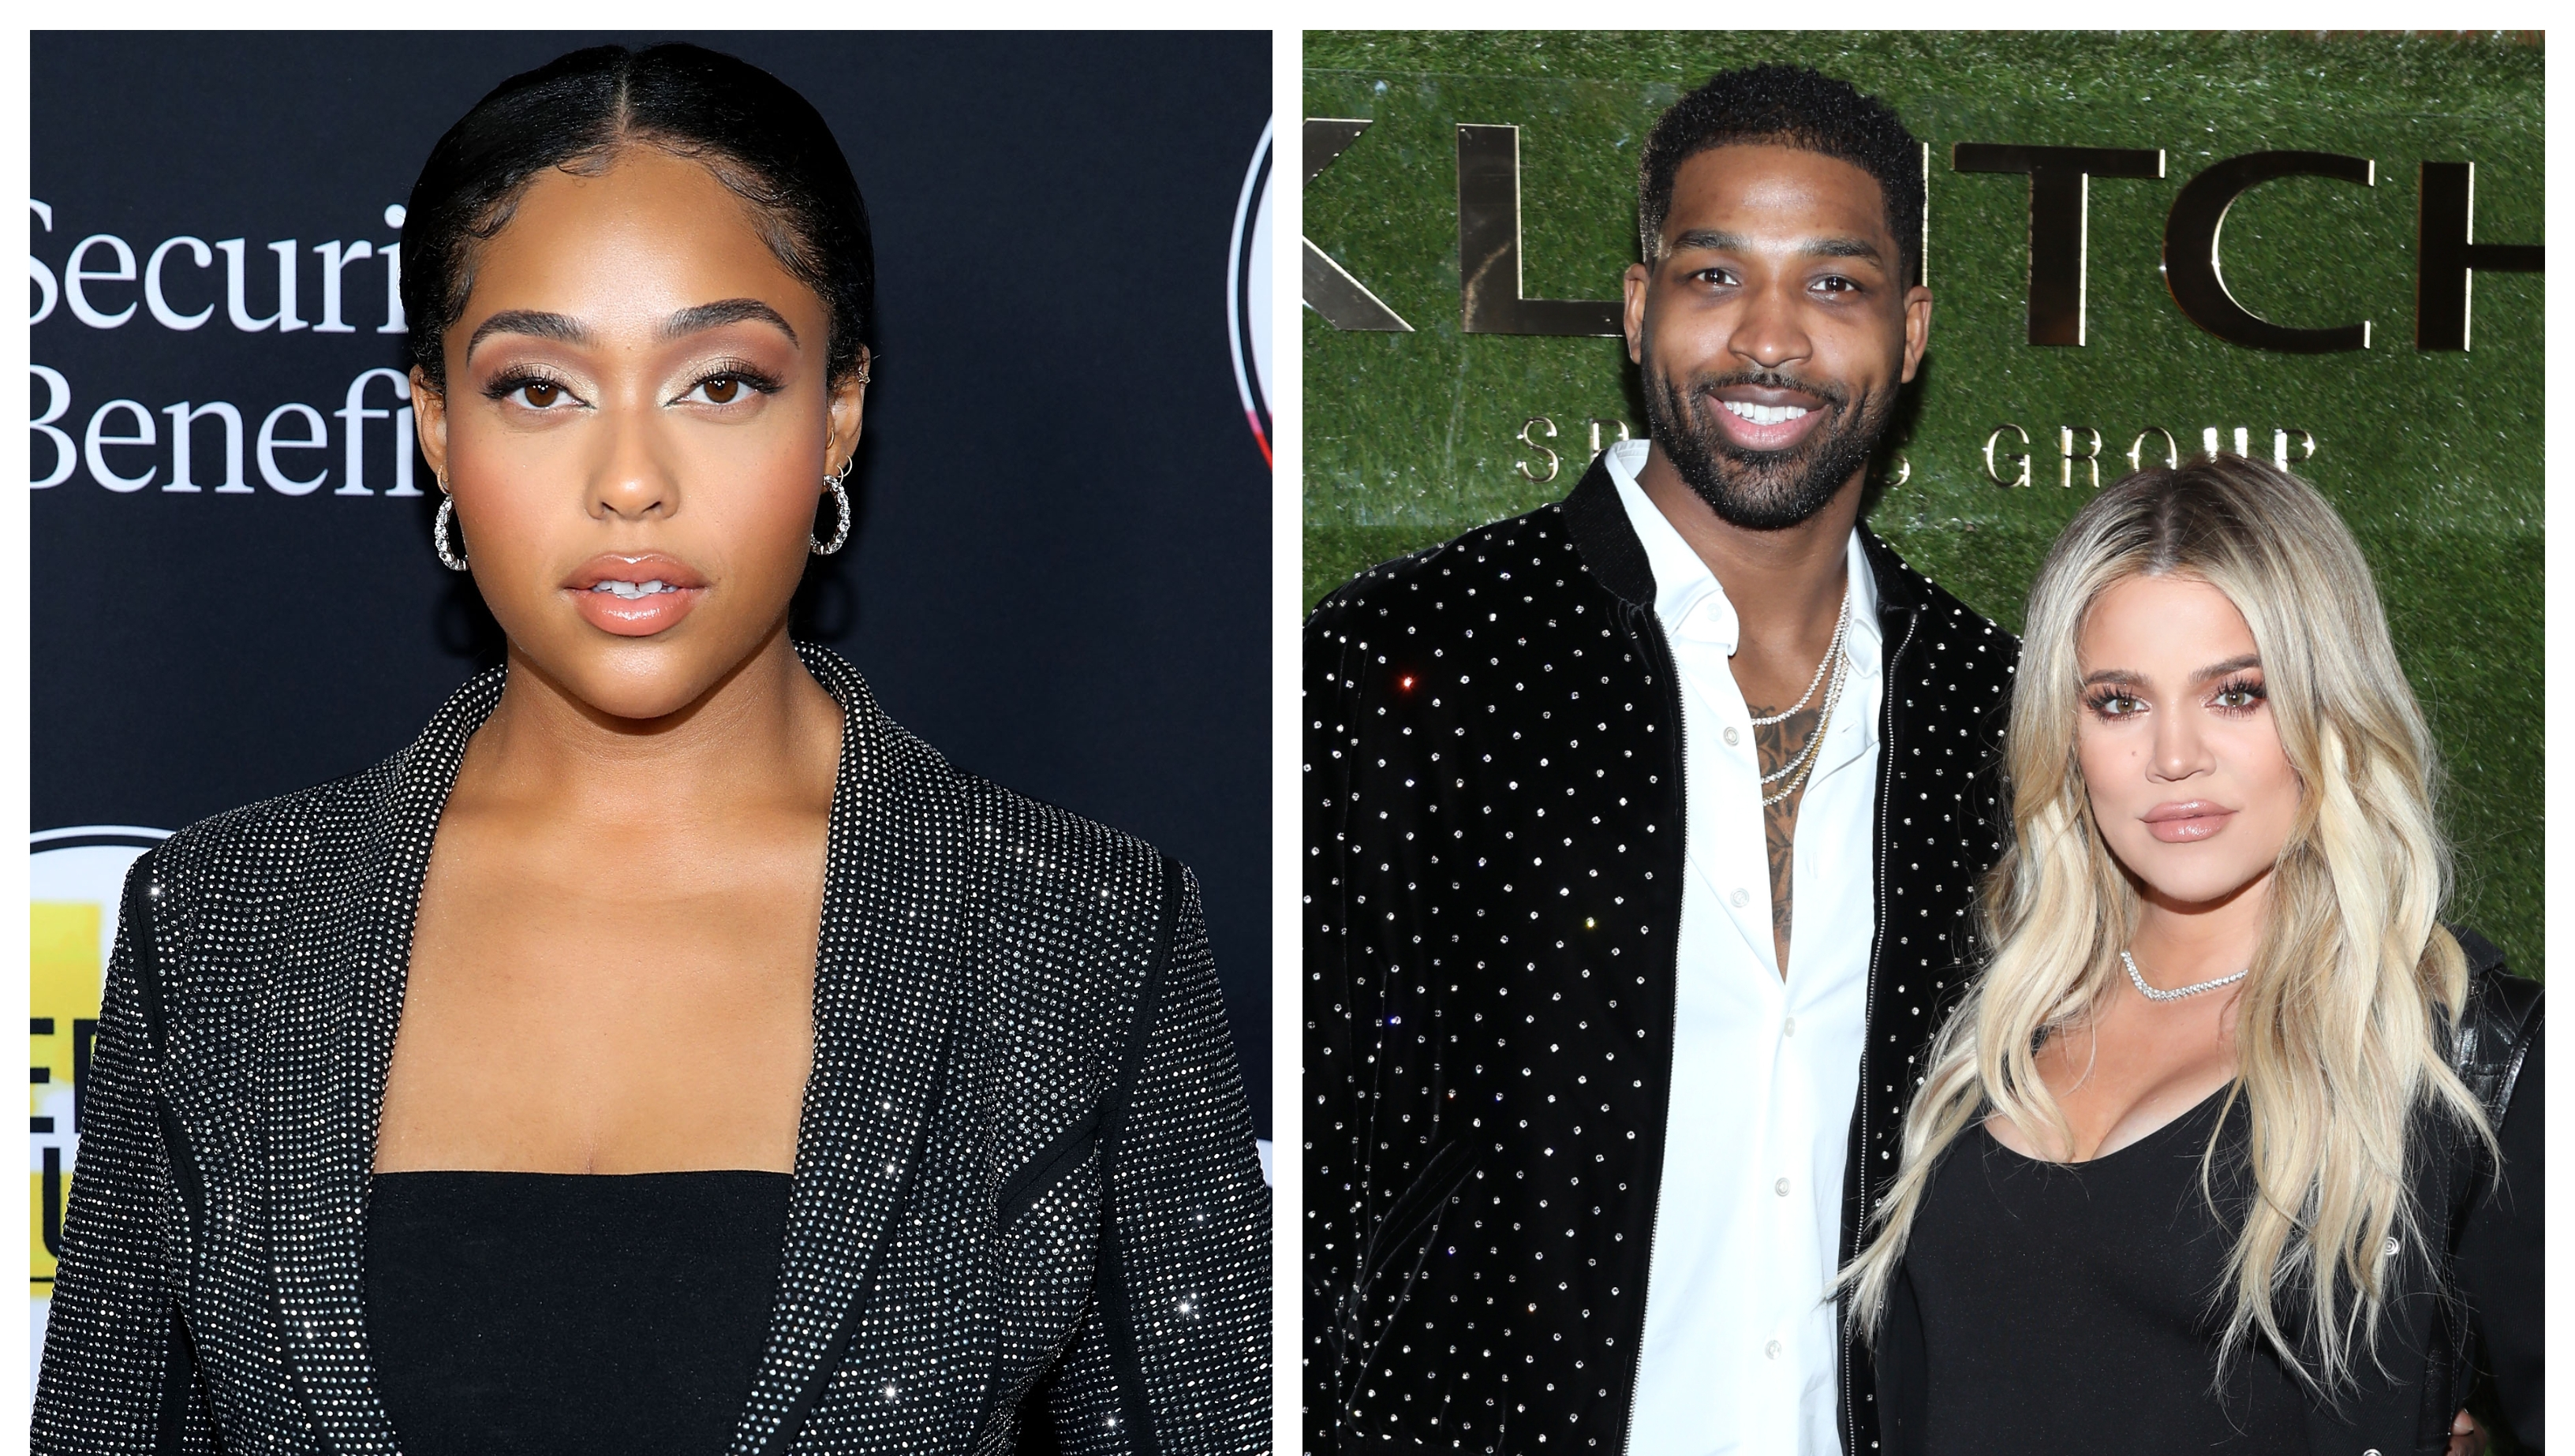 A split image of Jordyn Woods and Khloe Kardashian posing with Tristan Thompson